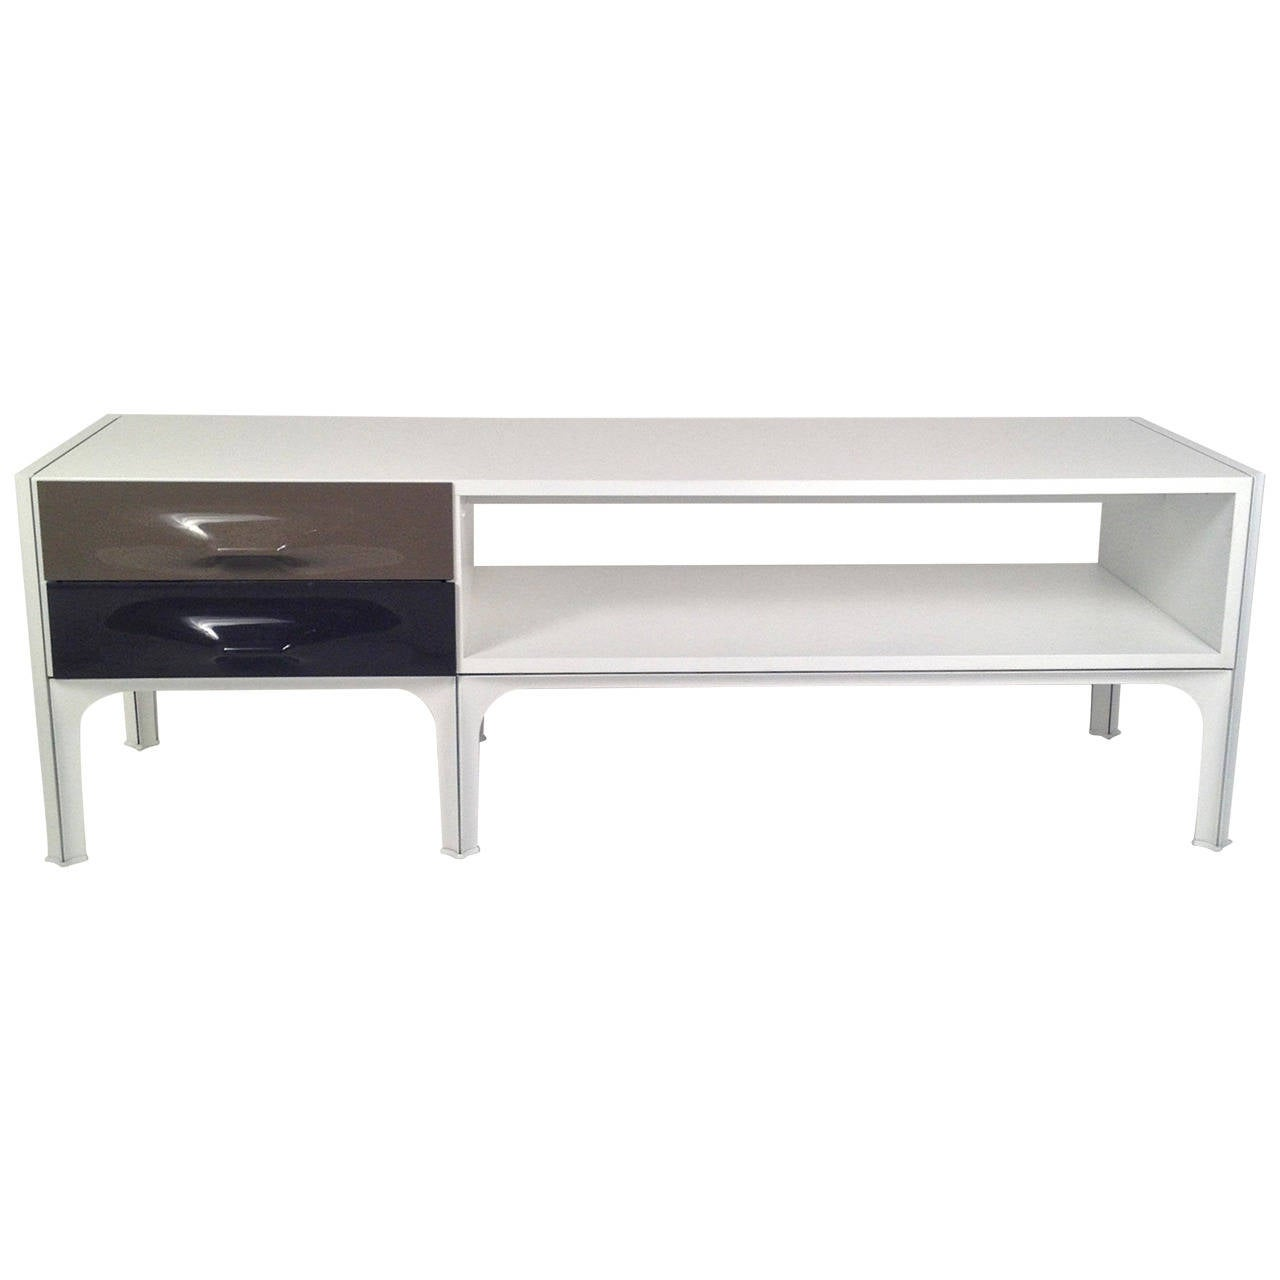 Raymond Loewy Free Standing Low Two Sided Cabinet/ Coffee Table ...